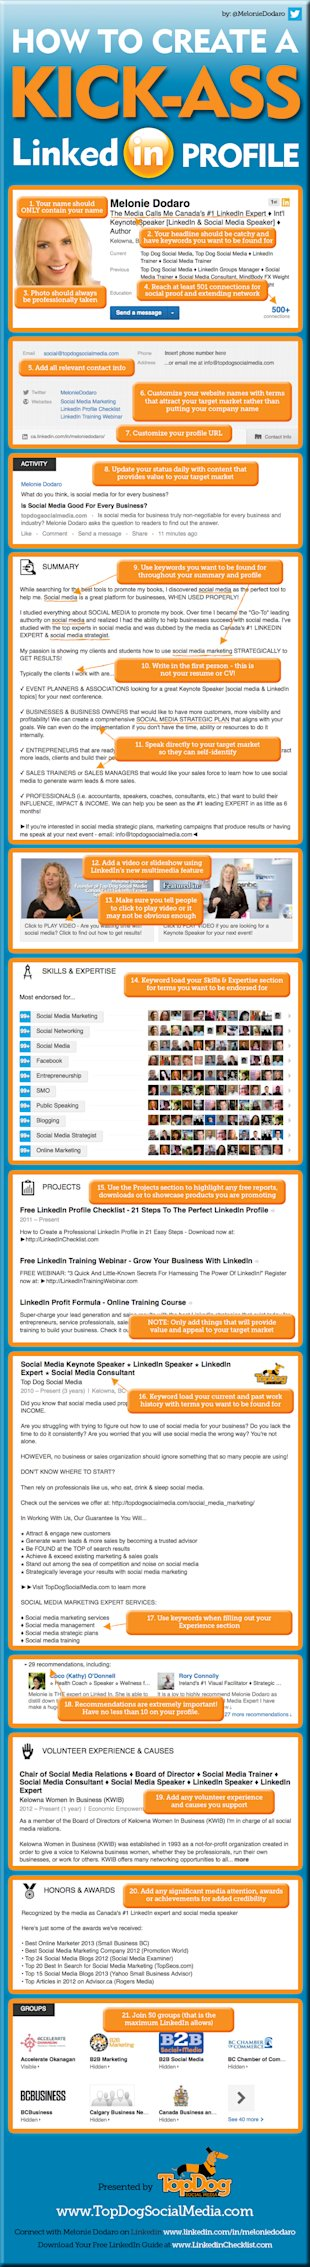 How to Create the Perfect LinkedIn Profile [Infographic] image TopDogLinkedIn Infographic HI5